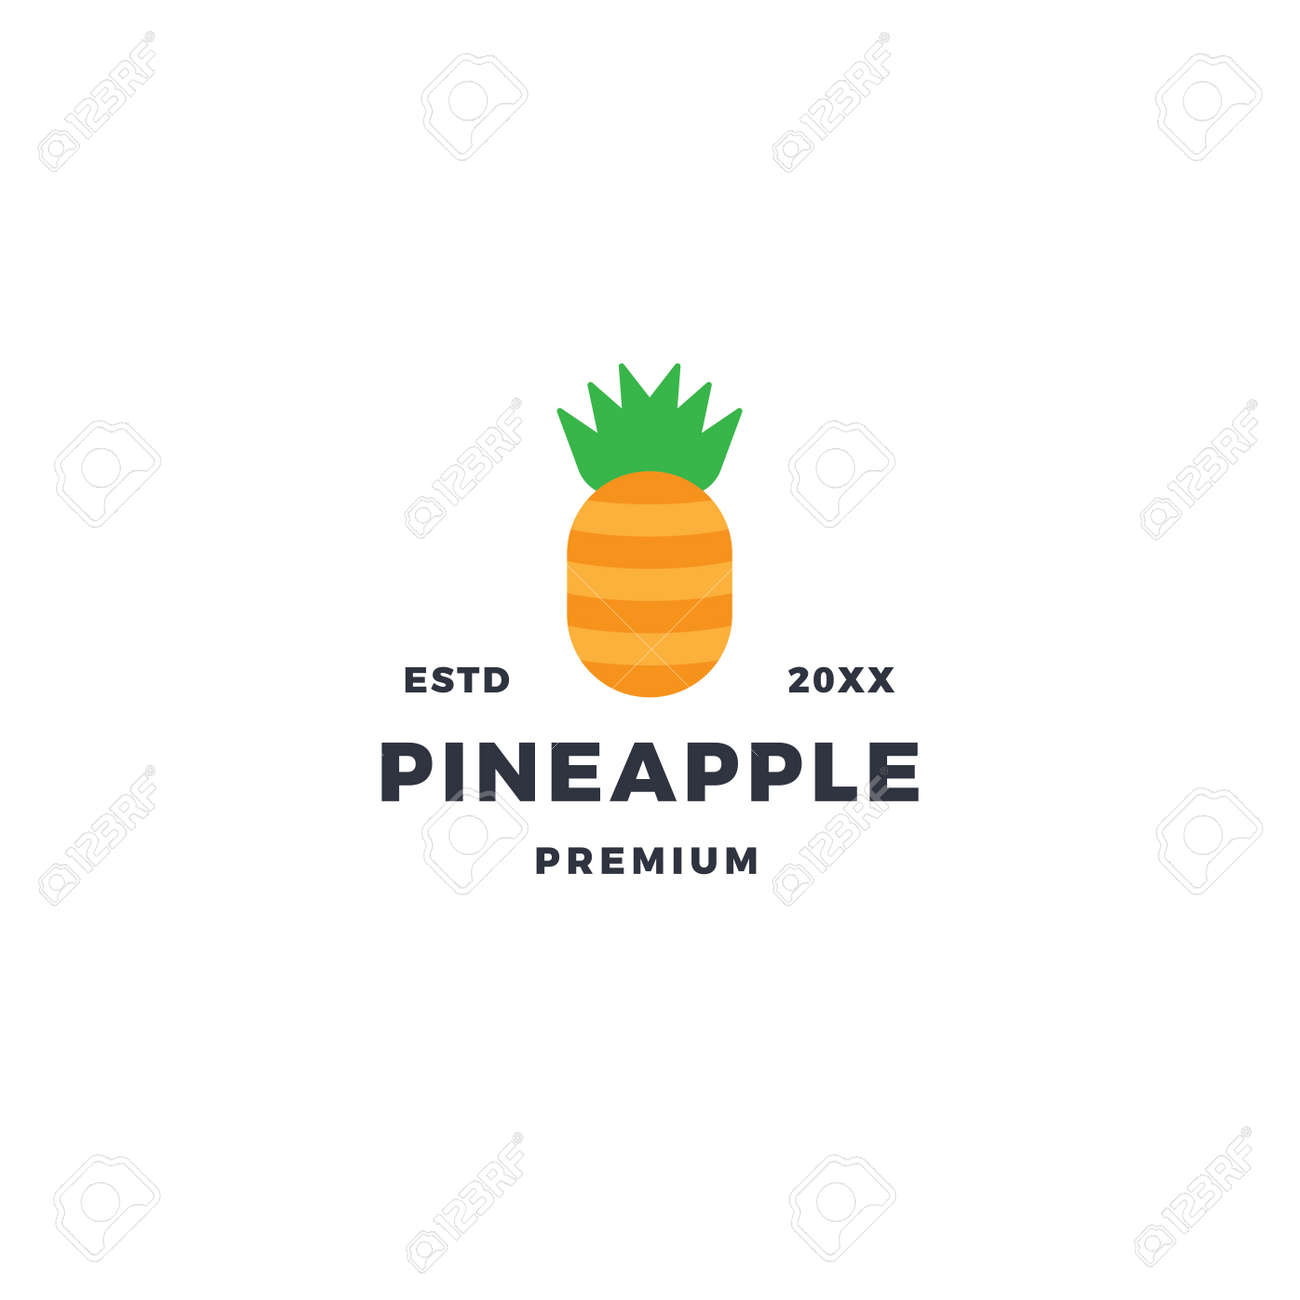 Simple pineapple logo with flat style design - 167587814